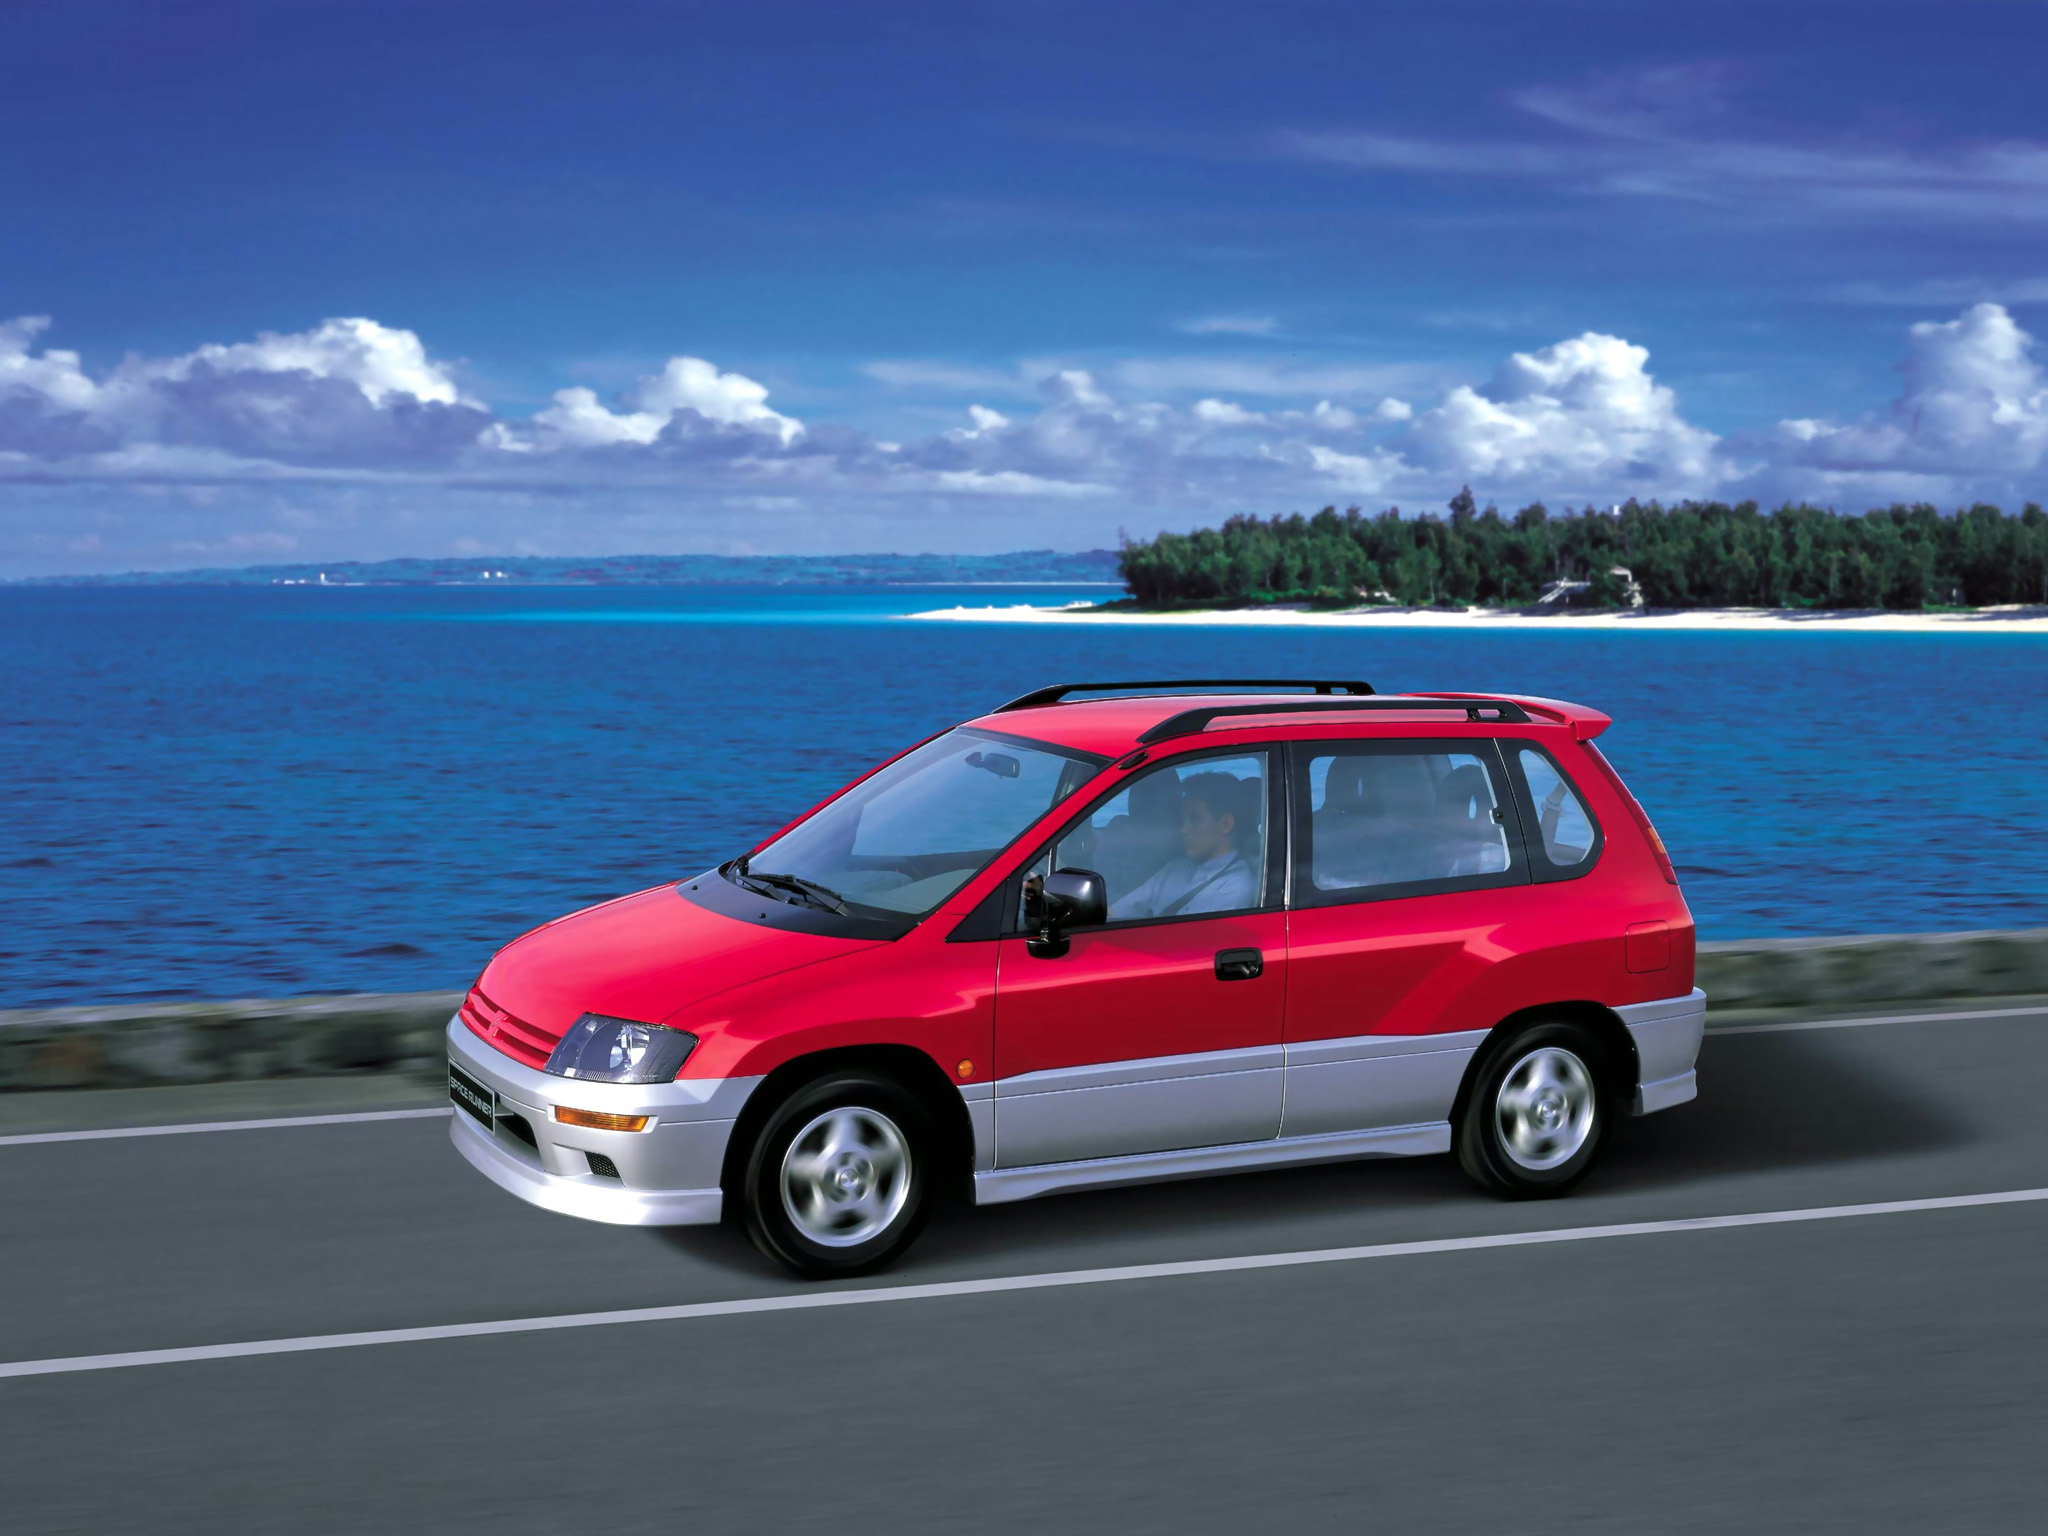 1999 Mitsubishi Space Runner Mpv 4-door